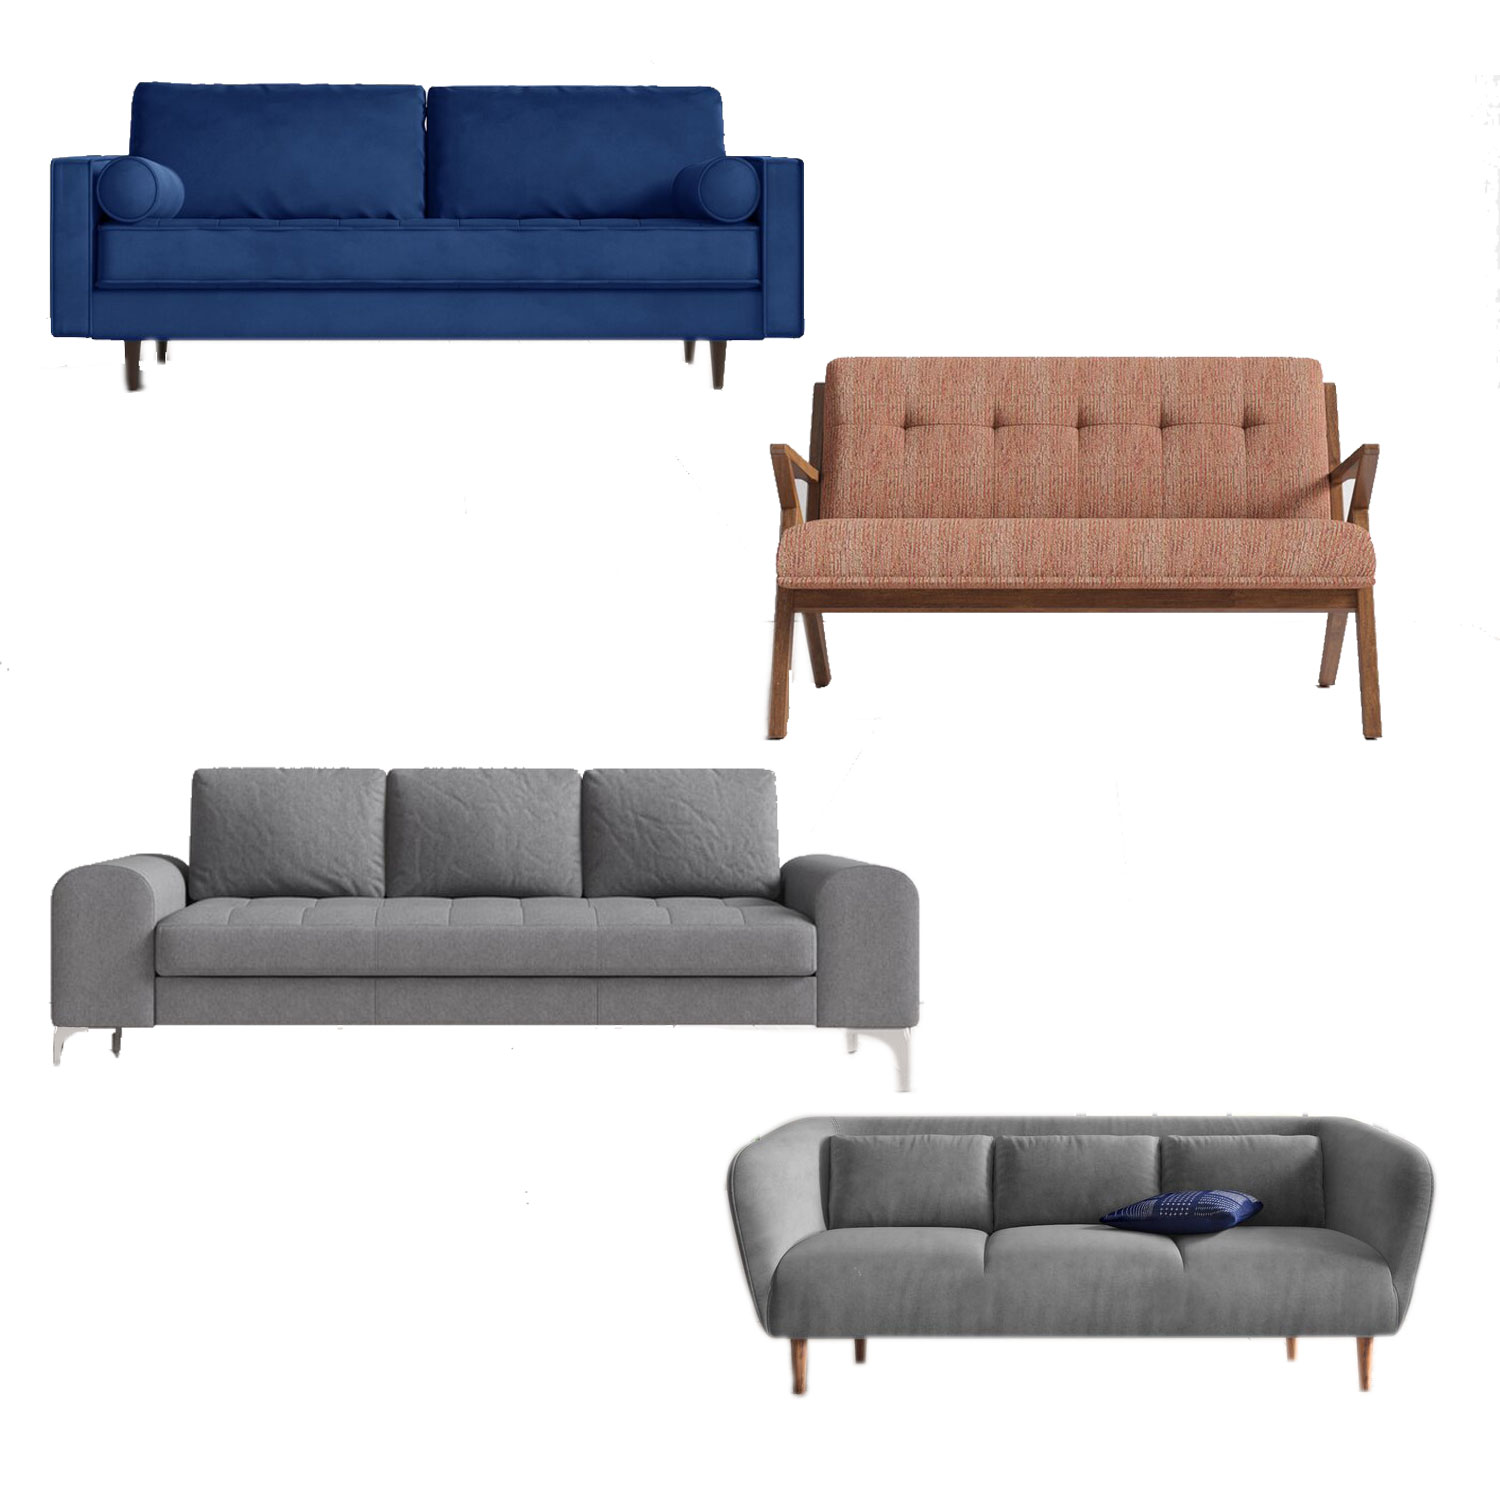 emmett couch, ravi couch, tess couch, marg sofa